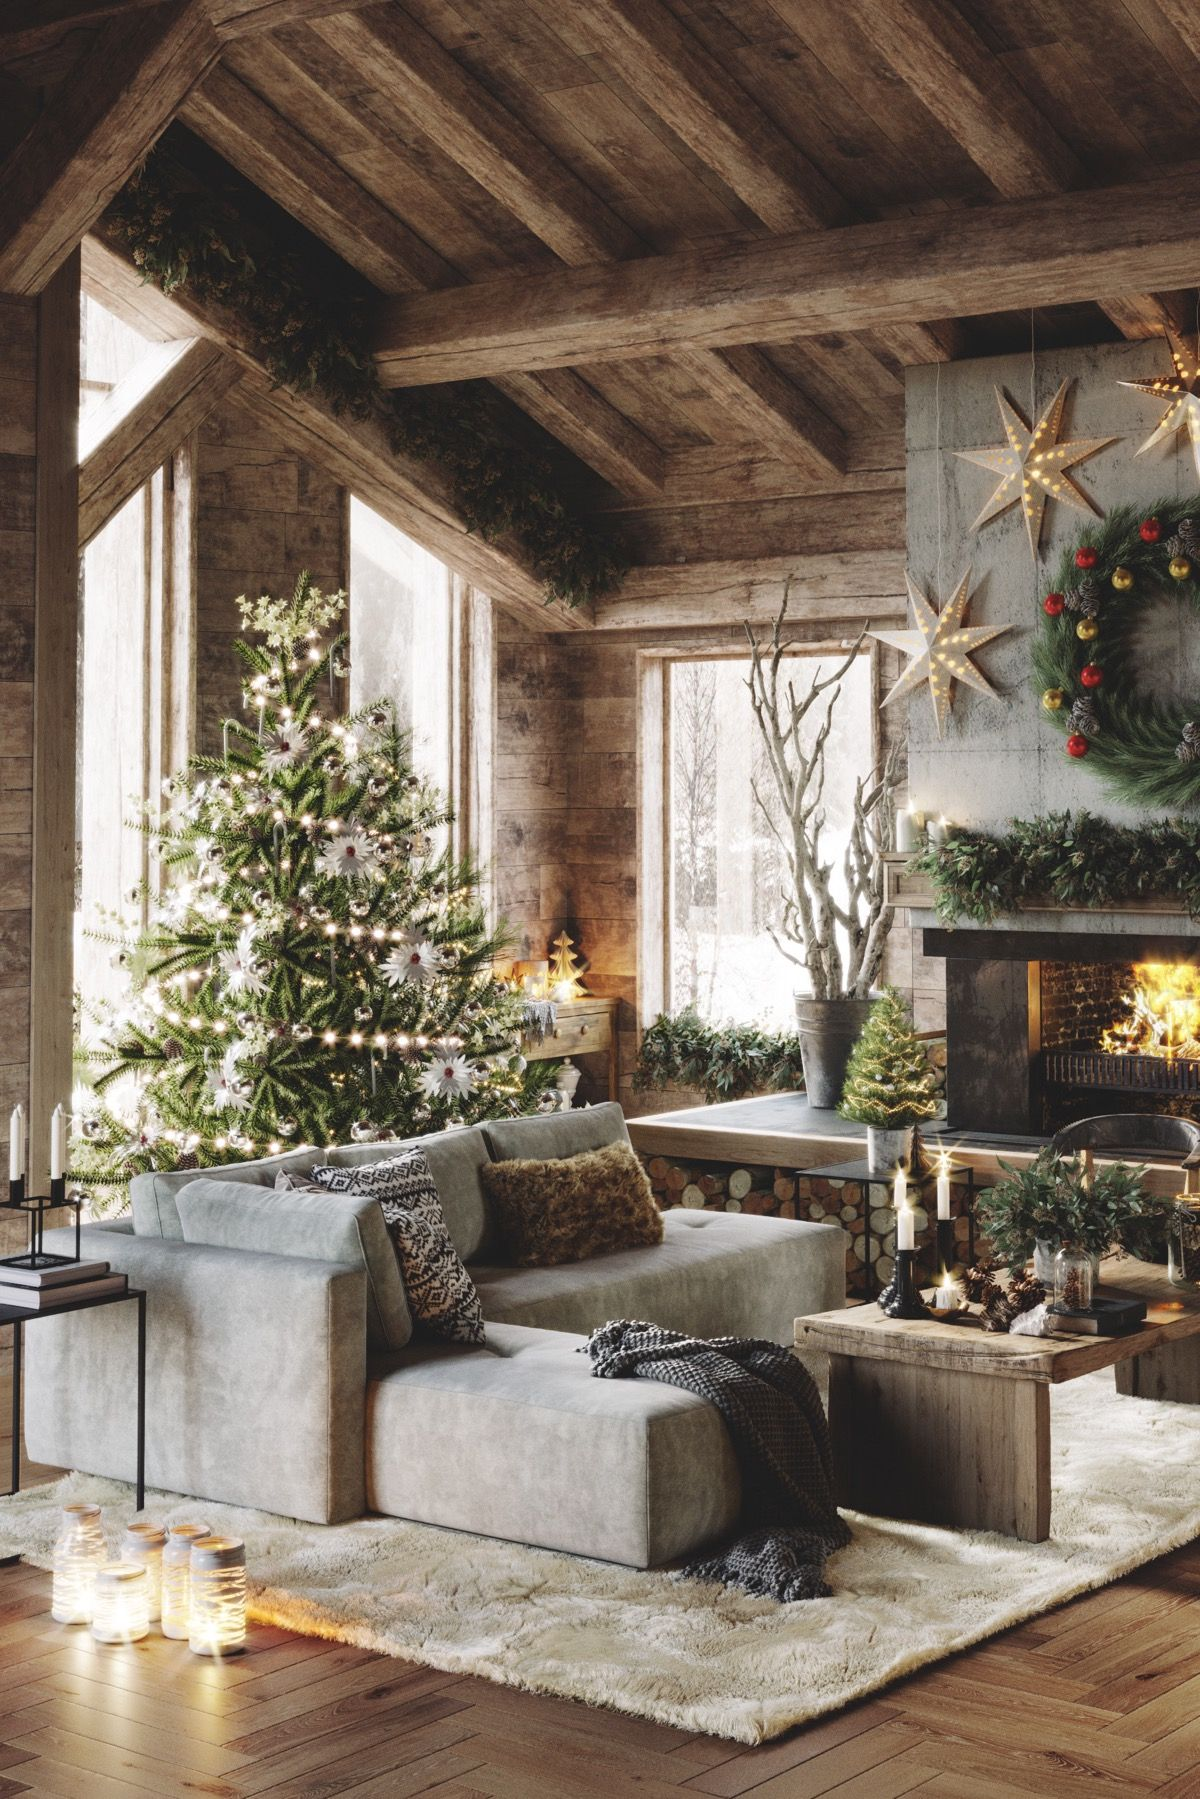 Photo of Wishing All Home Designing Readers A Very Happy Christmas An